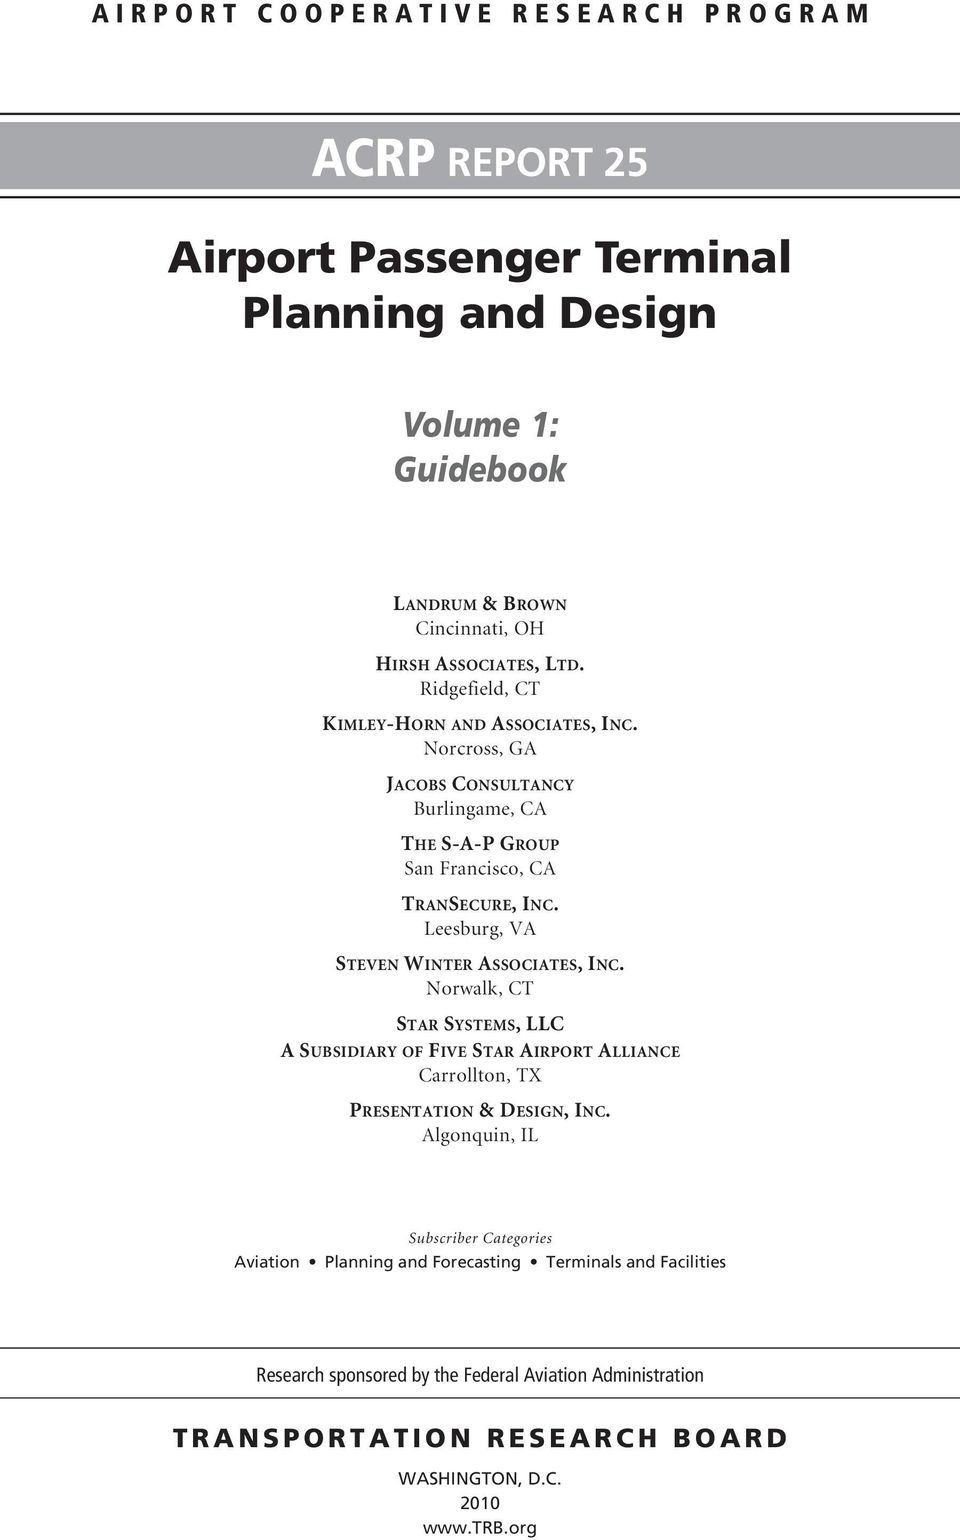 Acrp report 25 airport passenger terminal planning and design volume 1 guidebook airport Airport planning and design course